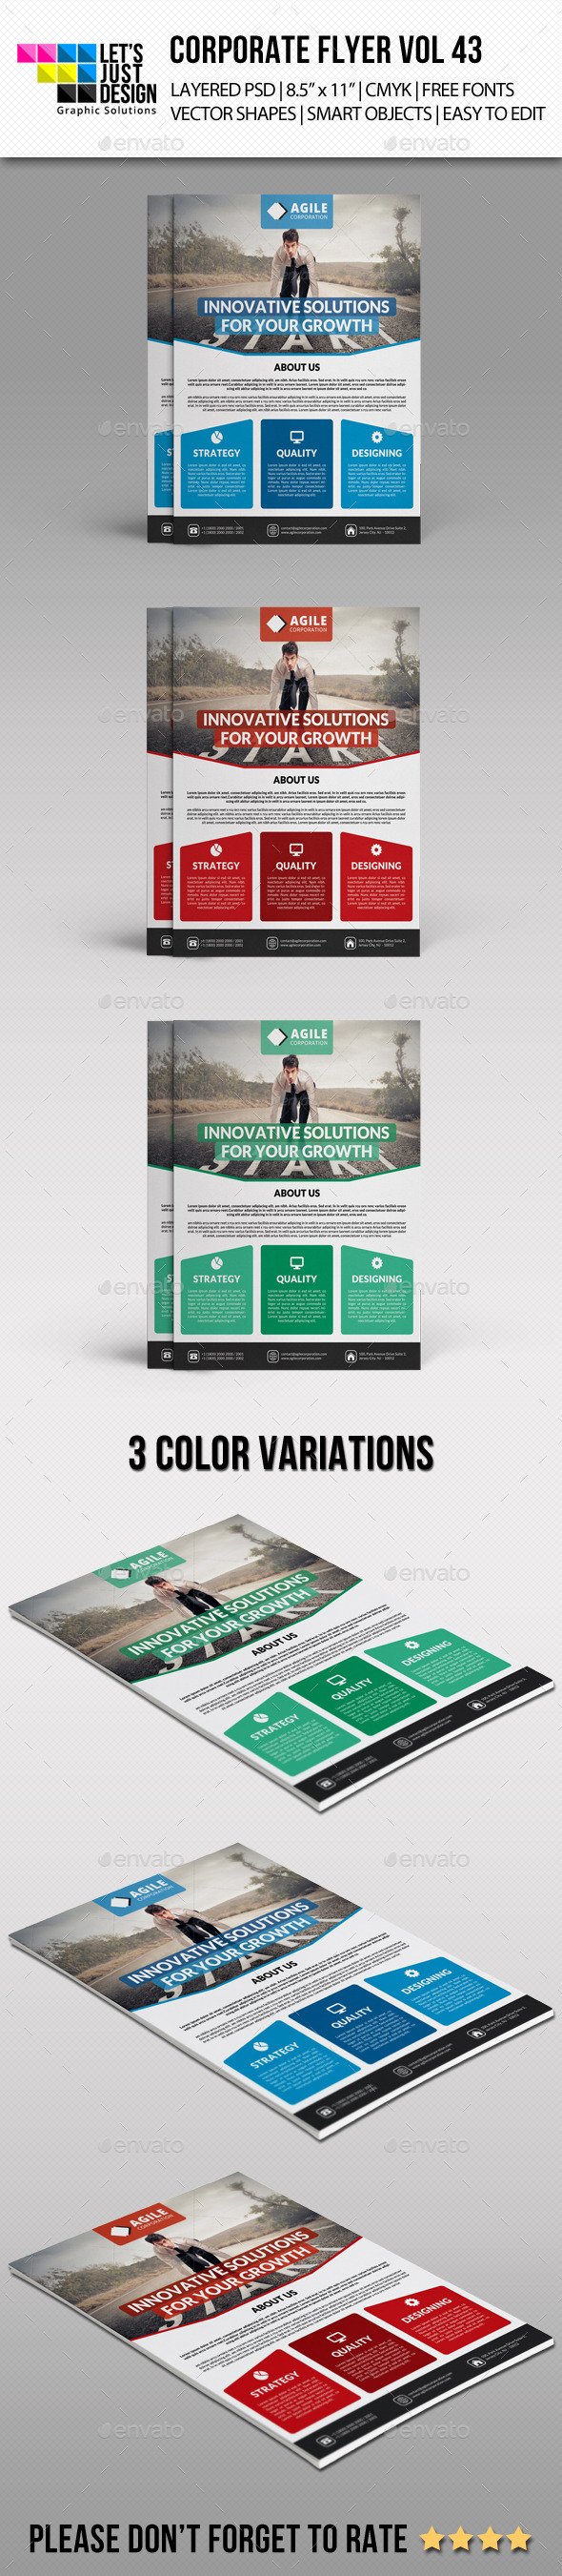 Corporate Flyer Template Vol 43 - Corporate Flyers